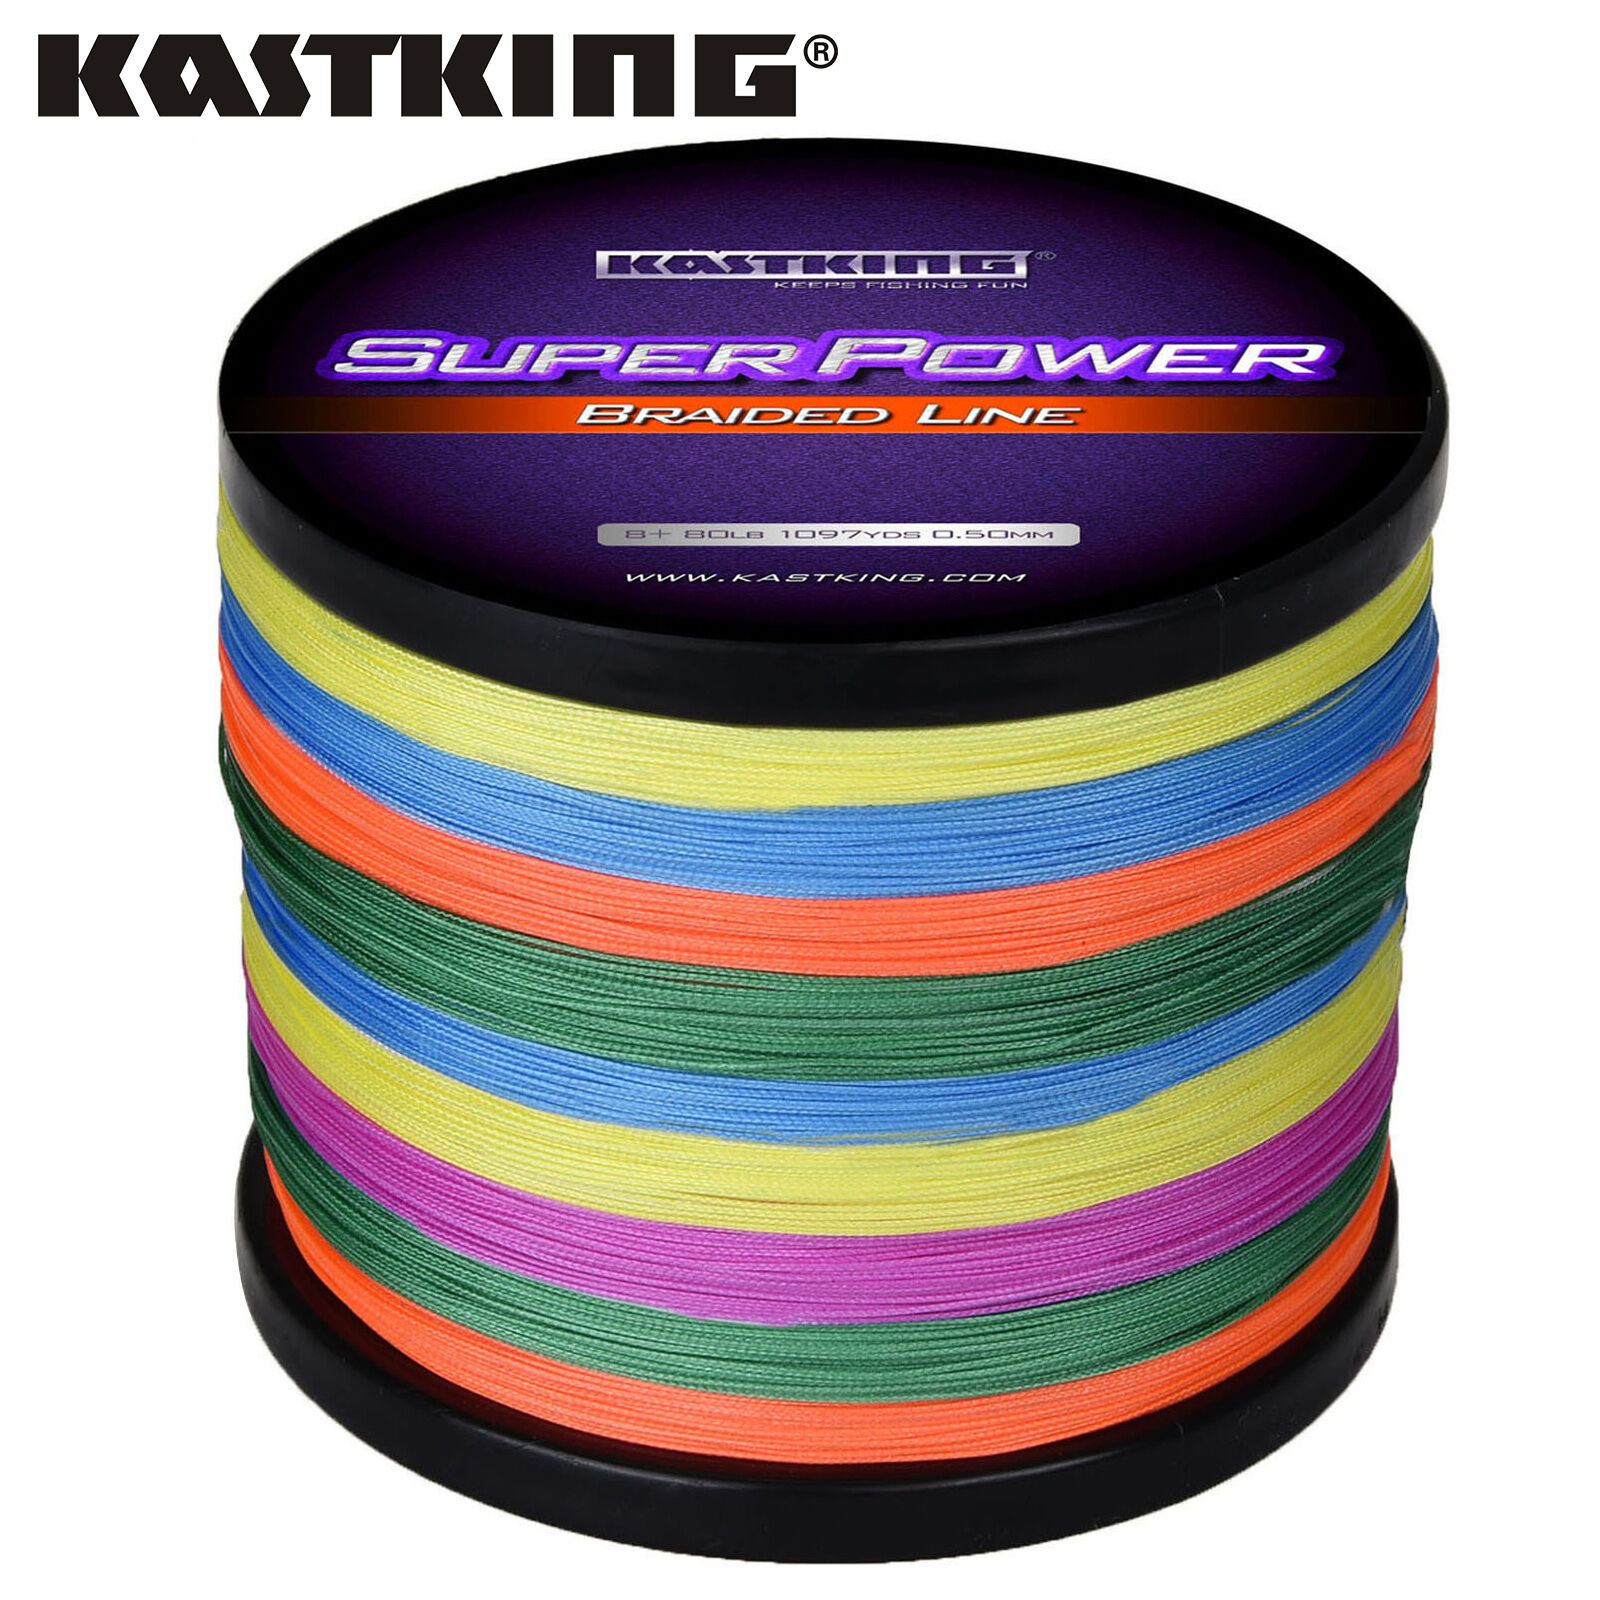 KastKing SuperPower  Braided Fishing Line (1094 Yard-65 LB) - MULTI-COLOR  fast shipping worldwide